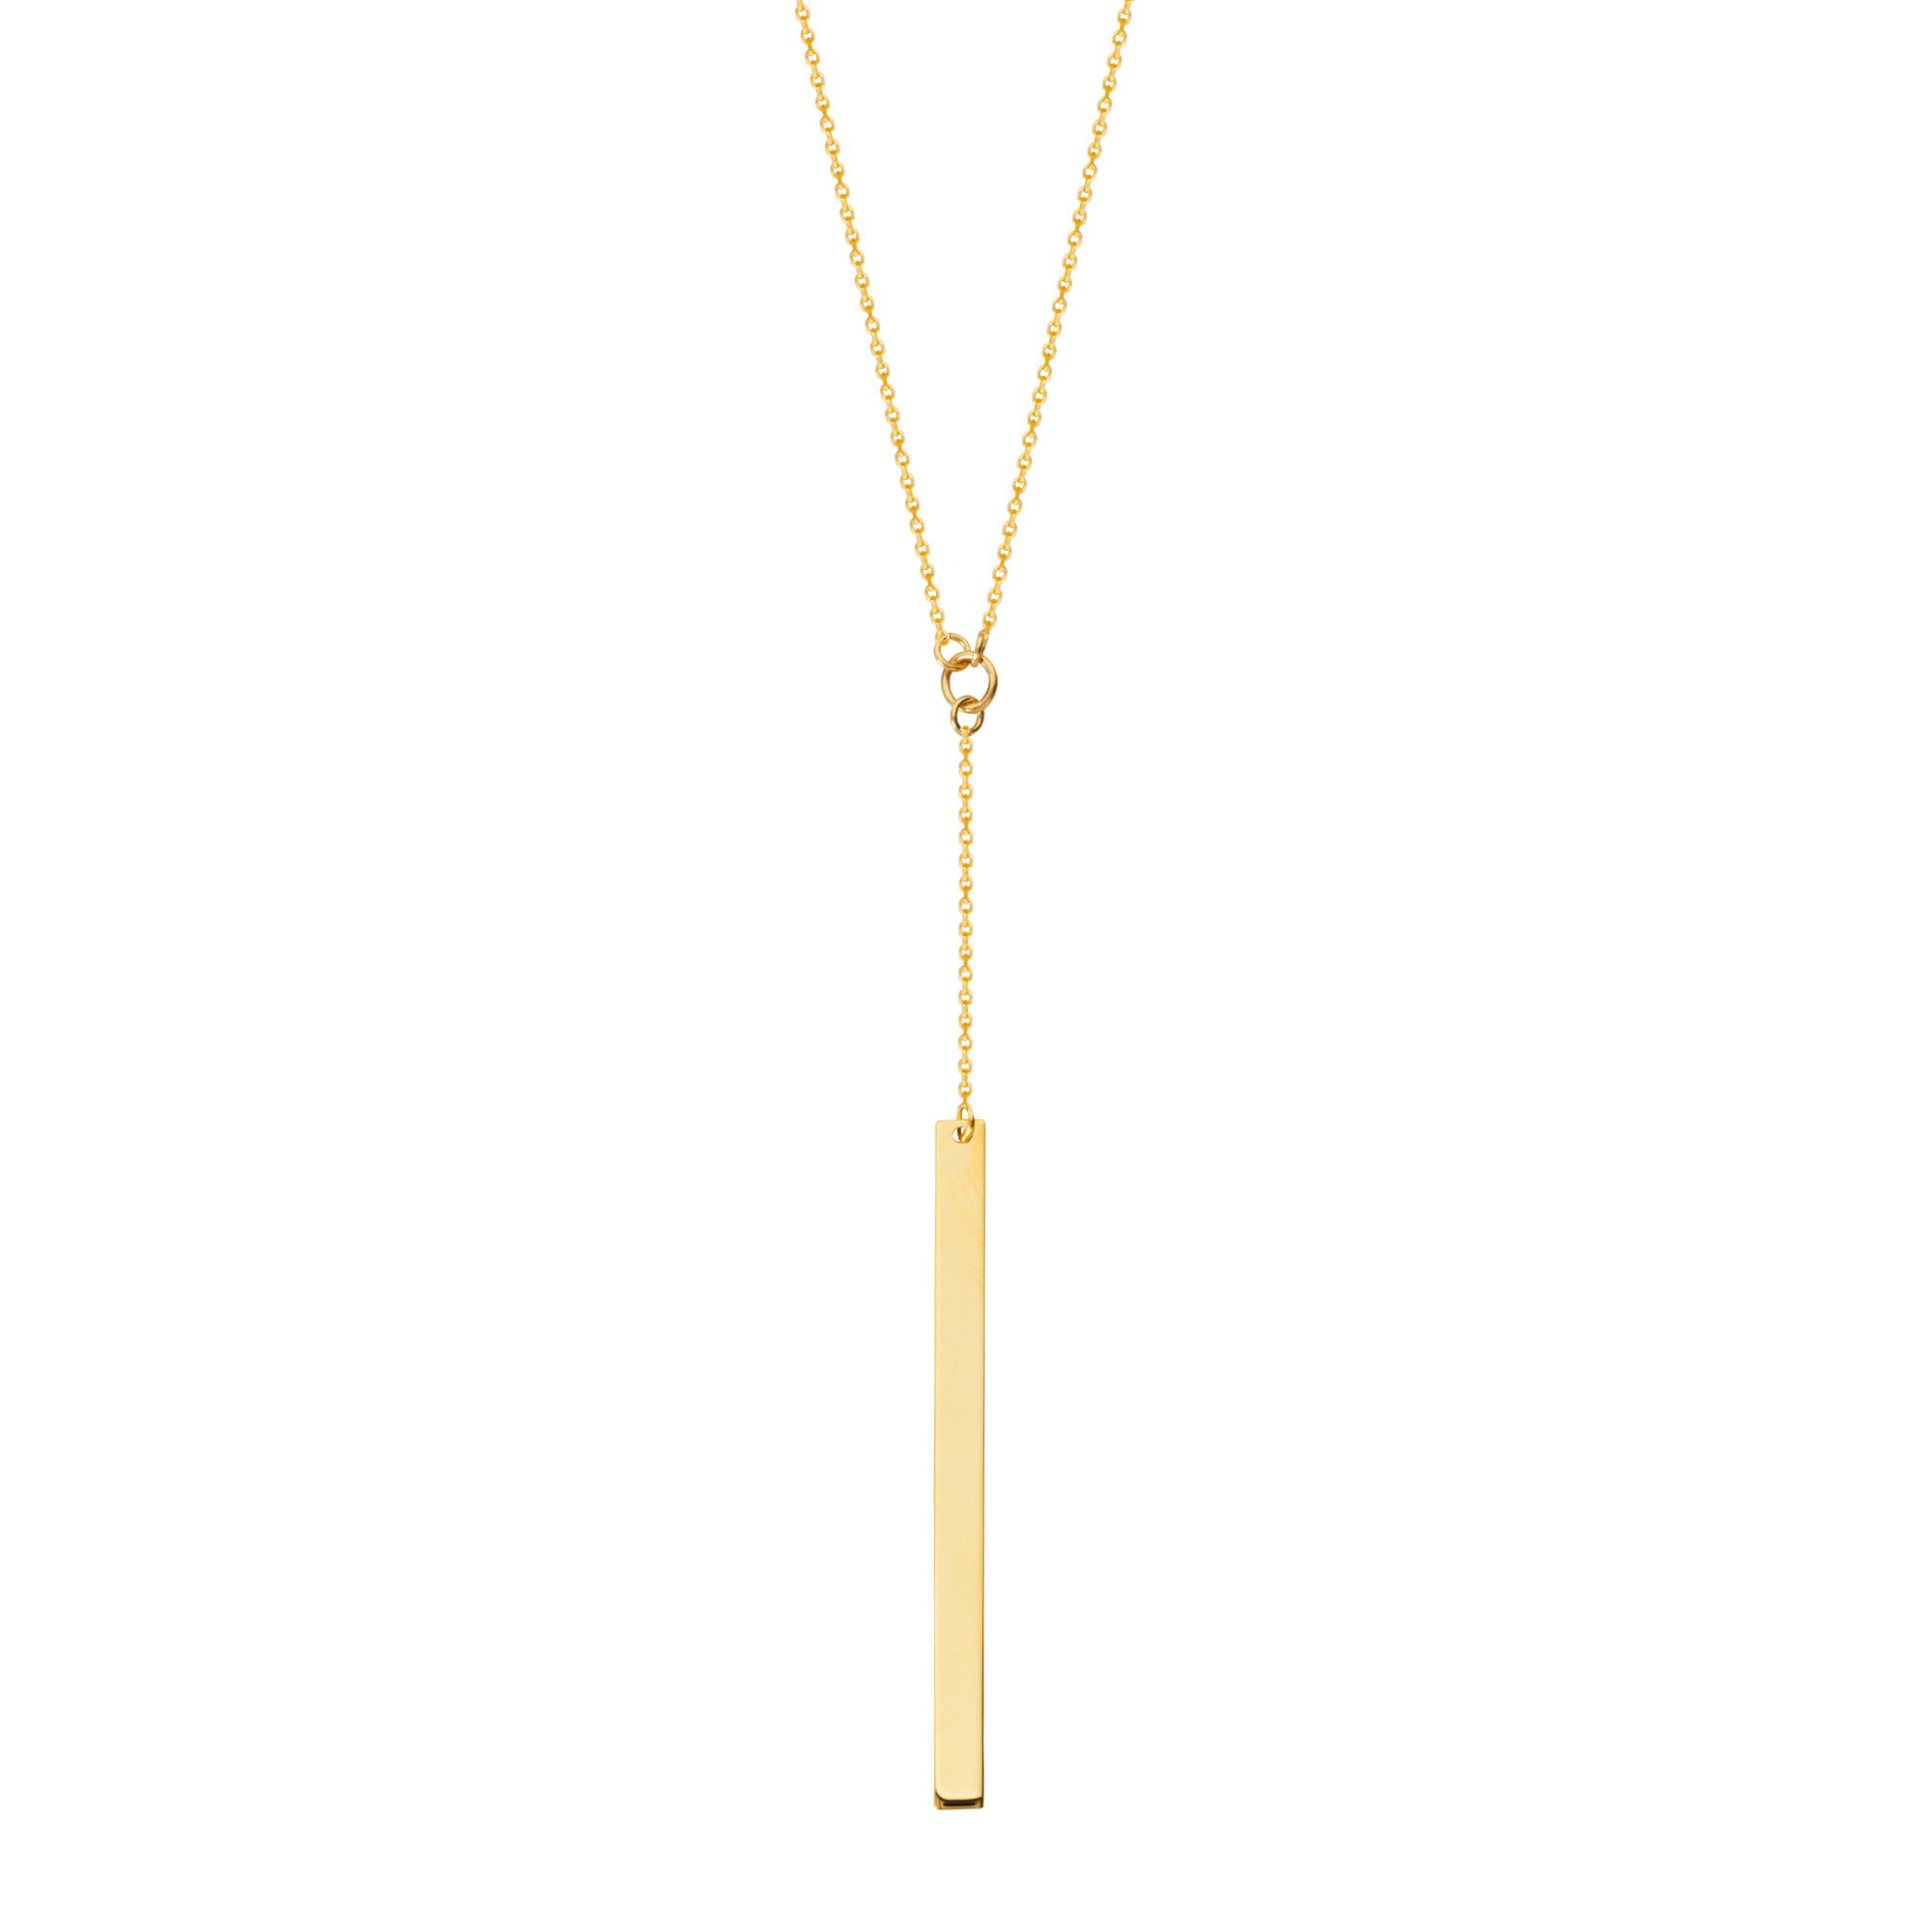 North to South Y-style Bar Drop Necklace 14k Yellow Gold by AzureBella Jewelry